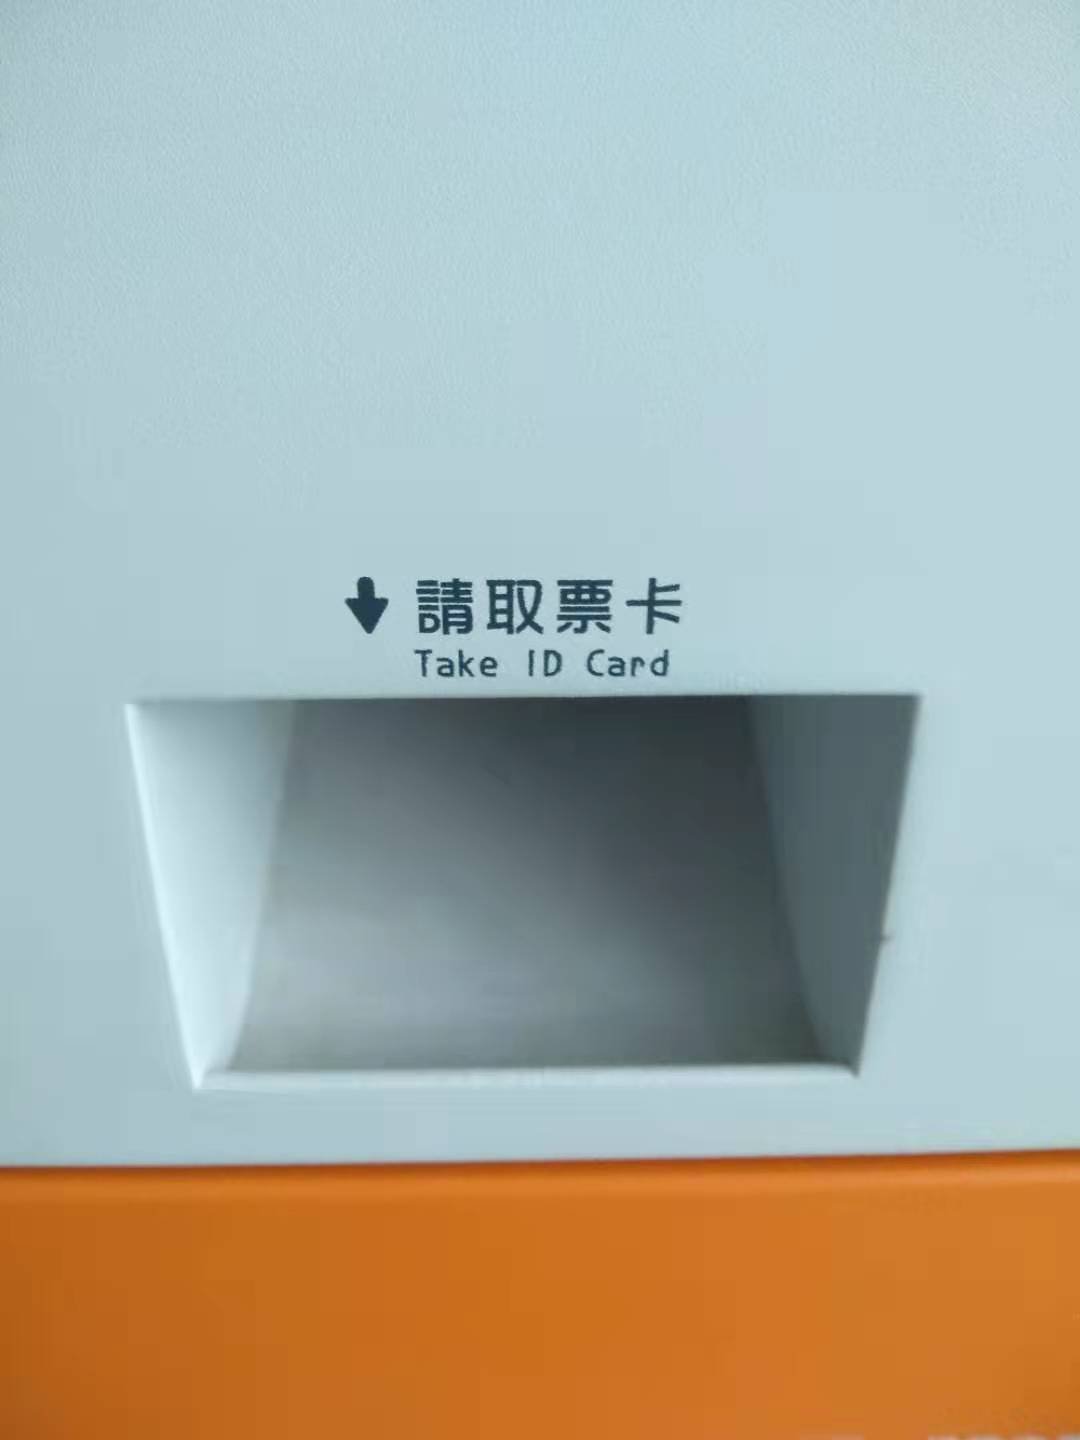 upright payment Kiosk with multi function